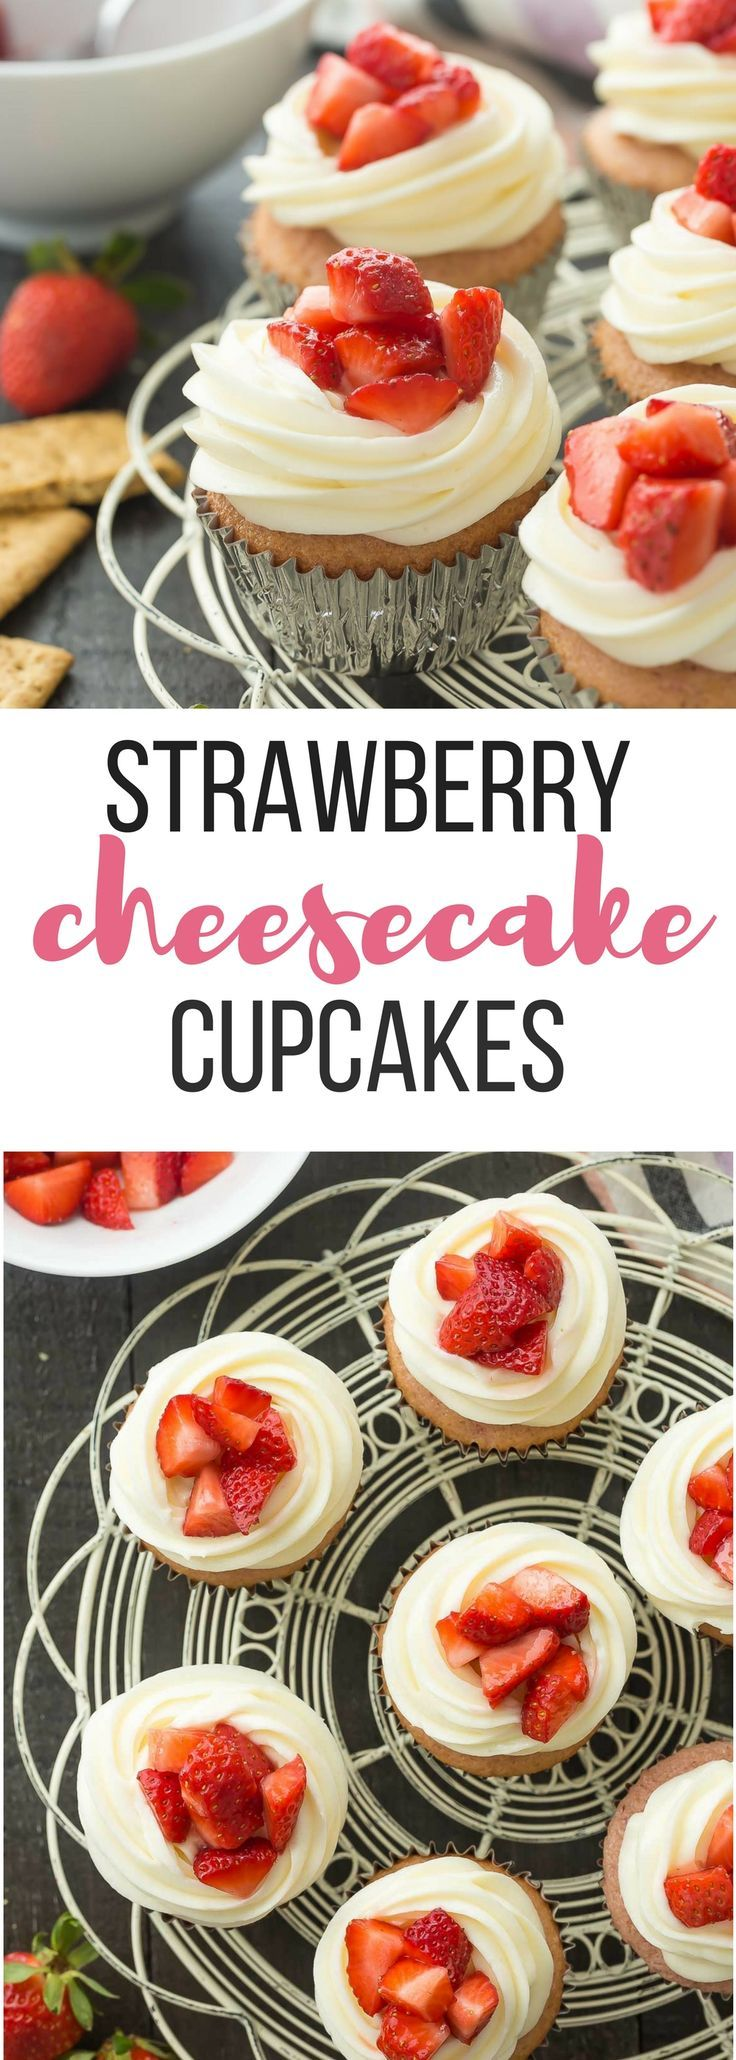 These Strawberry Cheesecake Cupcakes have a graham cracker base topped with a strawberry cake layer, cream cheese frosting and fresh strawberries. Perfect for any birthday, Easter dinner or Spring celebration! Sprinkles bakery recipe. Includes how to recipe video | birthday | Easter | holiday | party | cream cheese | fresh strawberries | dessert